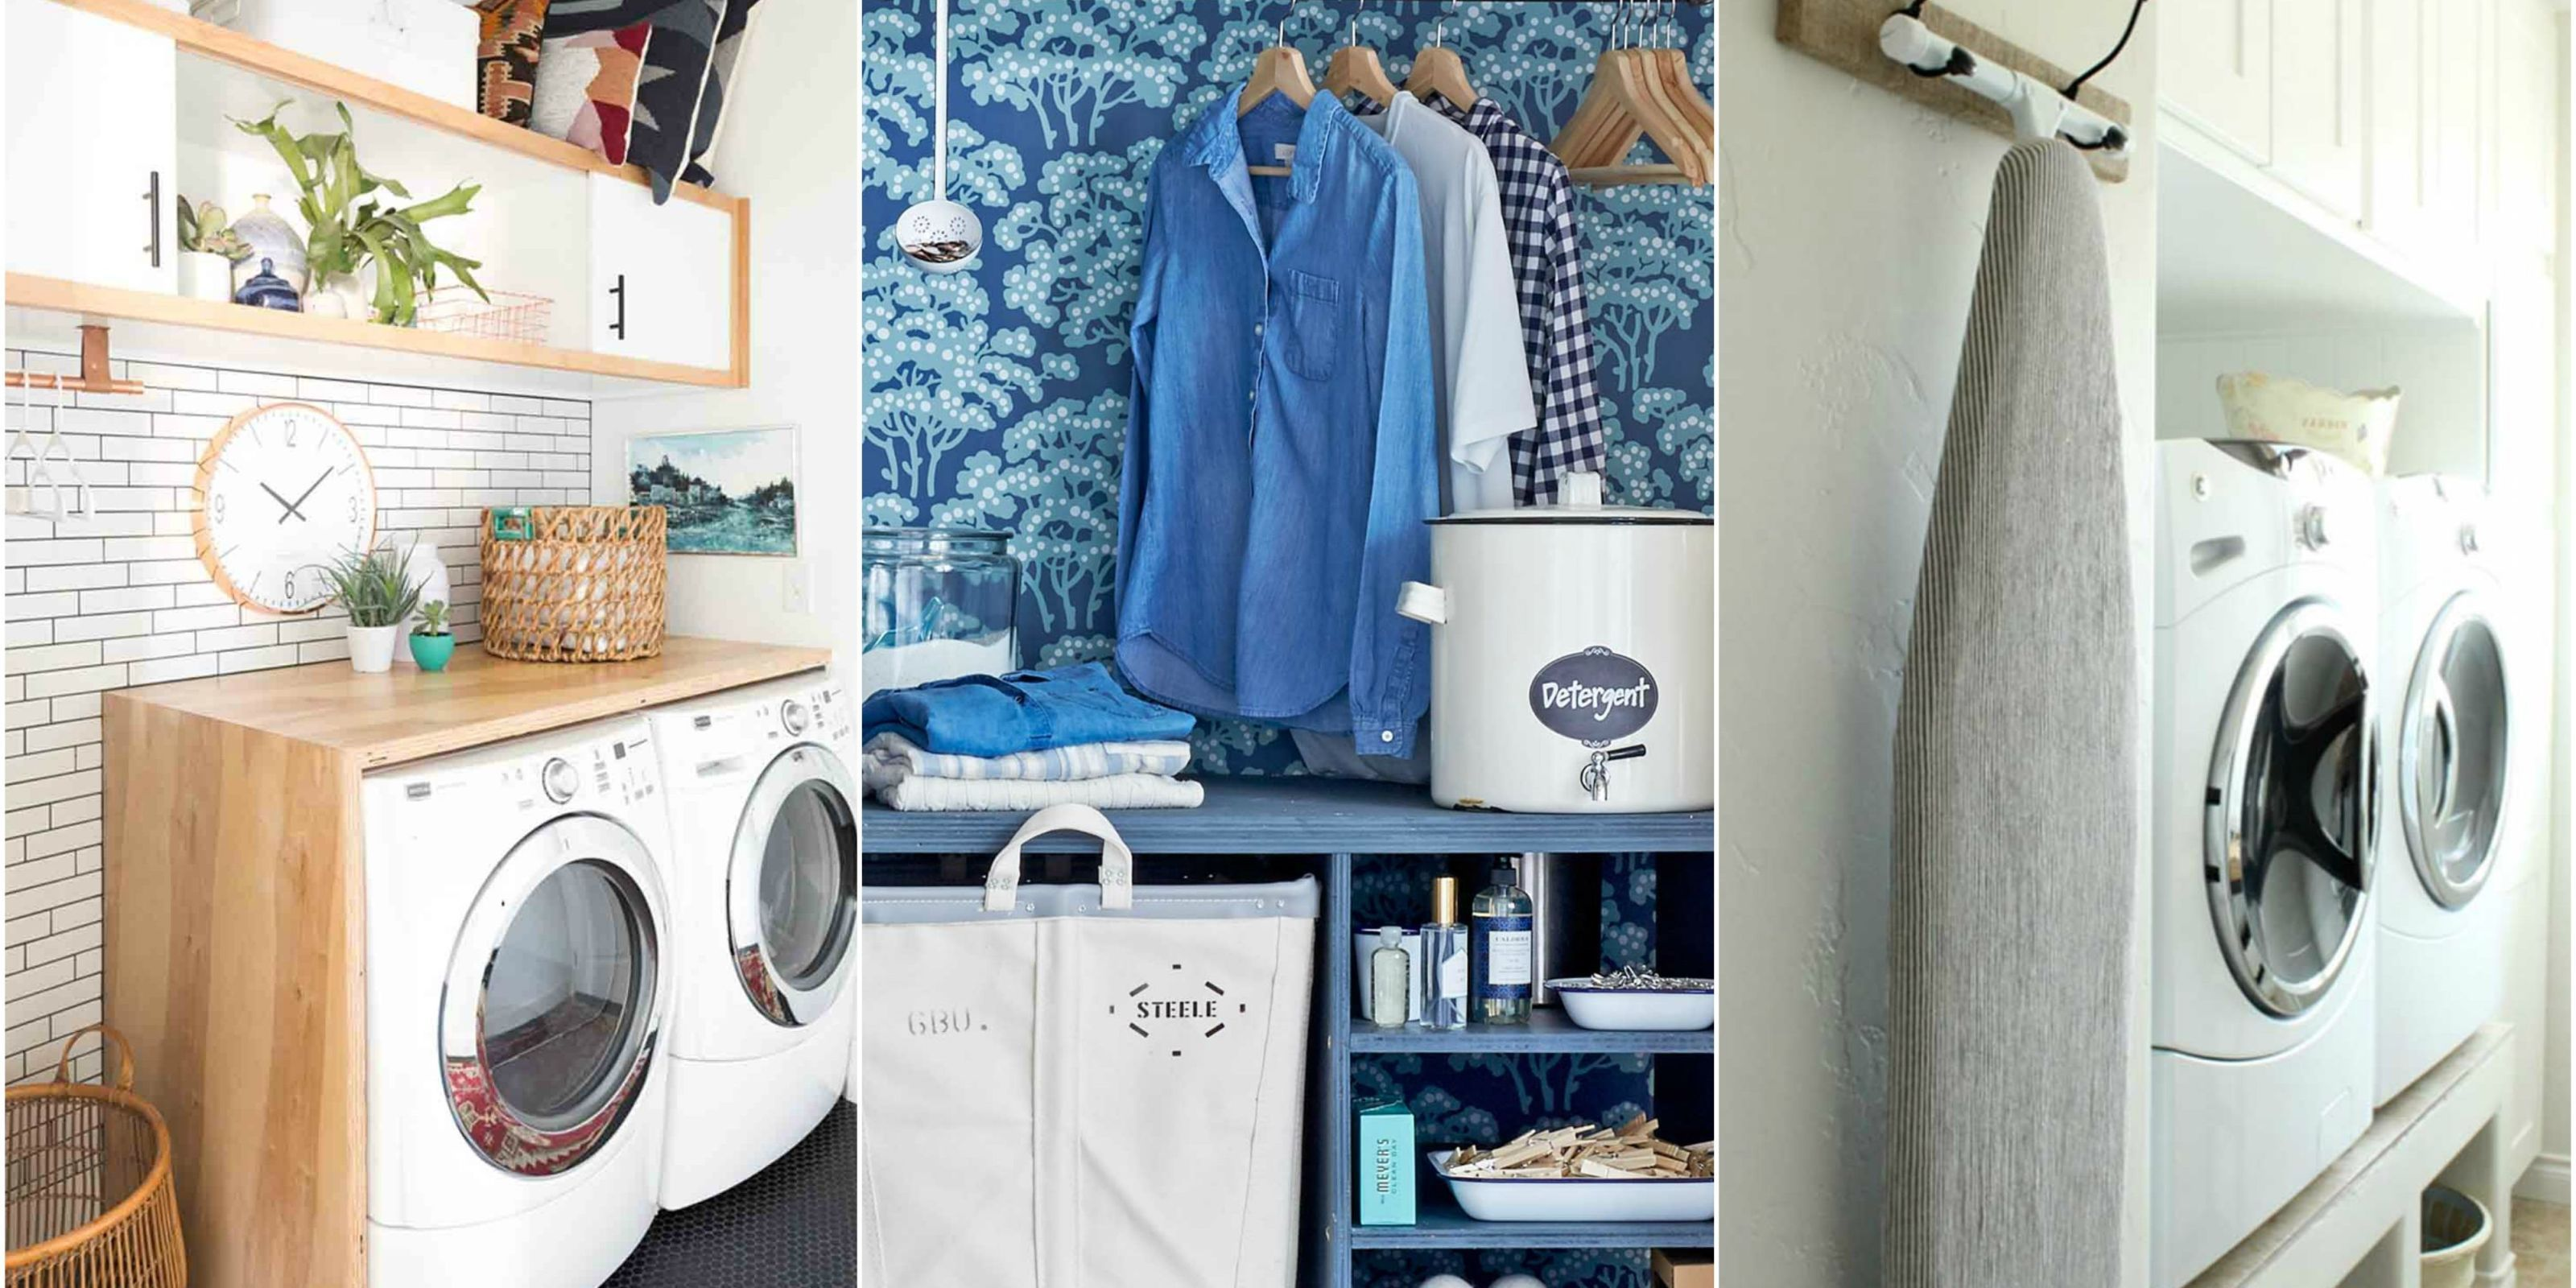 15 Laundry Room Storage And Organization Ideas   How To Organize Your Laundry  Room